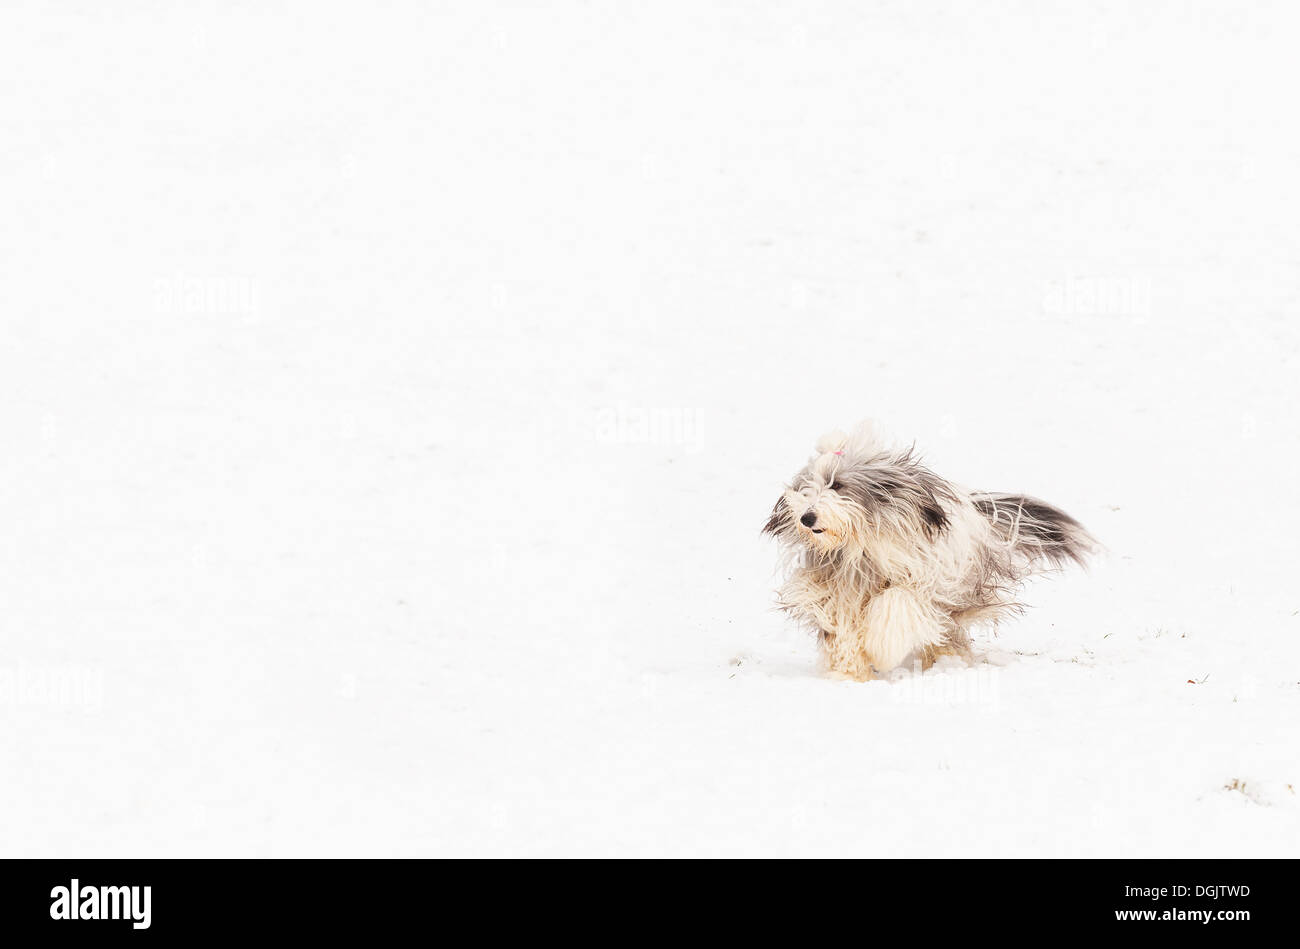 A bearded collie running through snow. - Stock Image